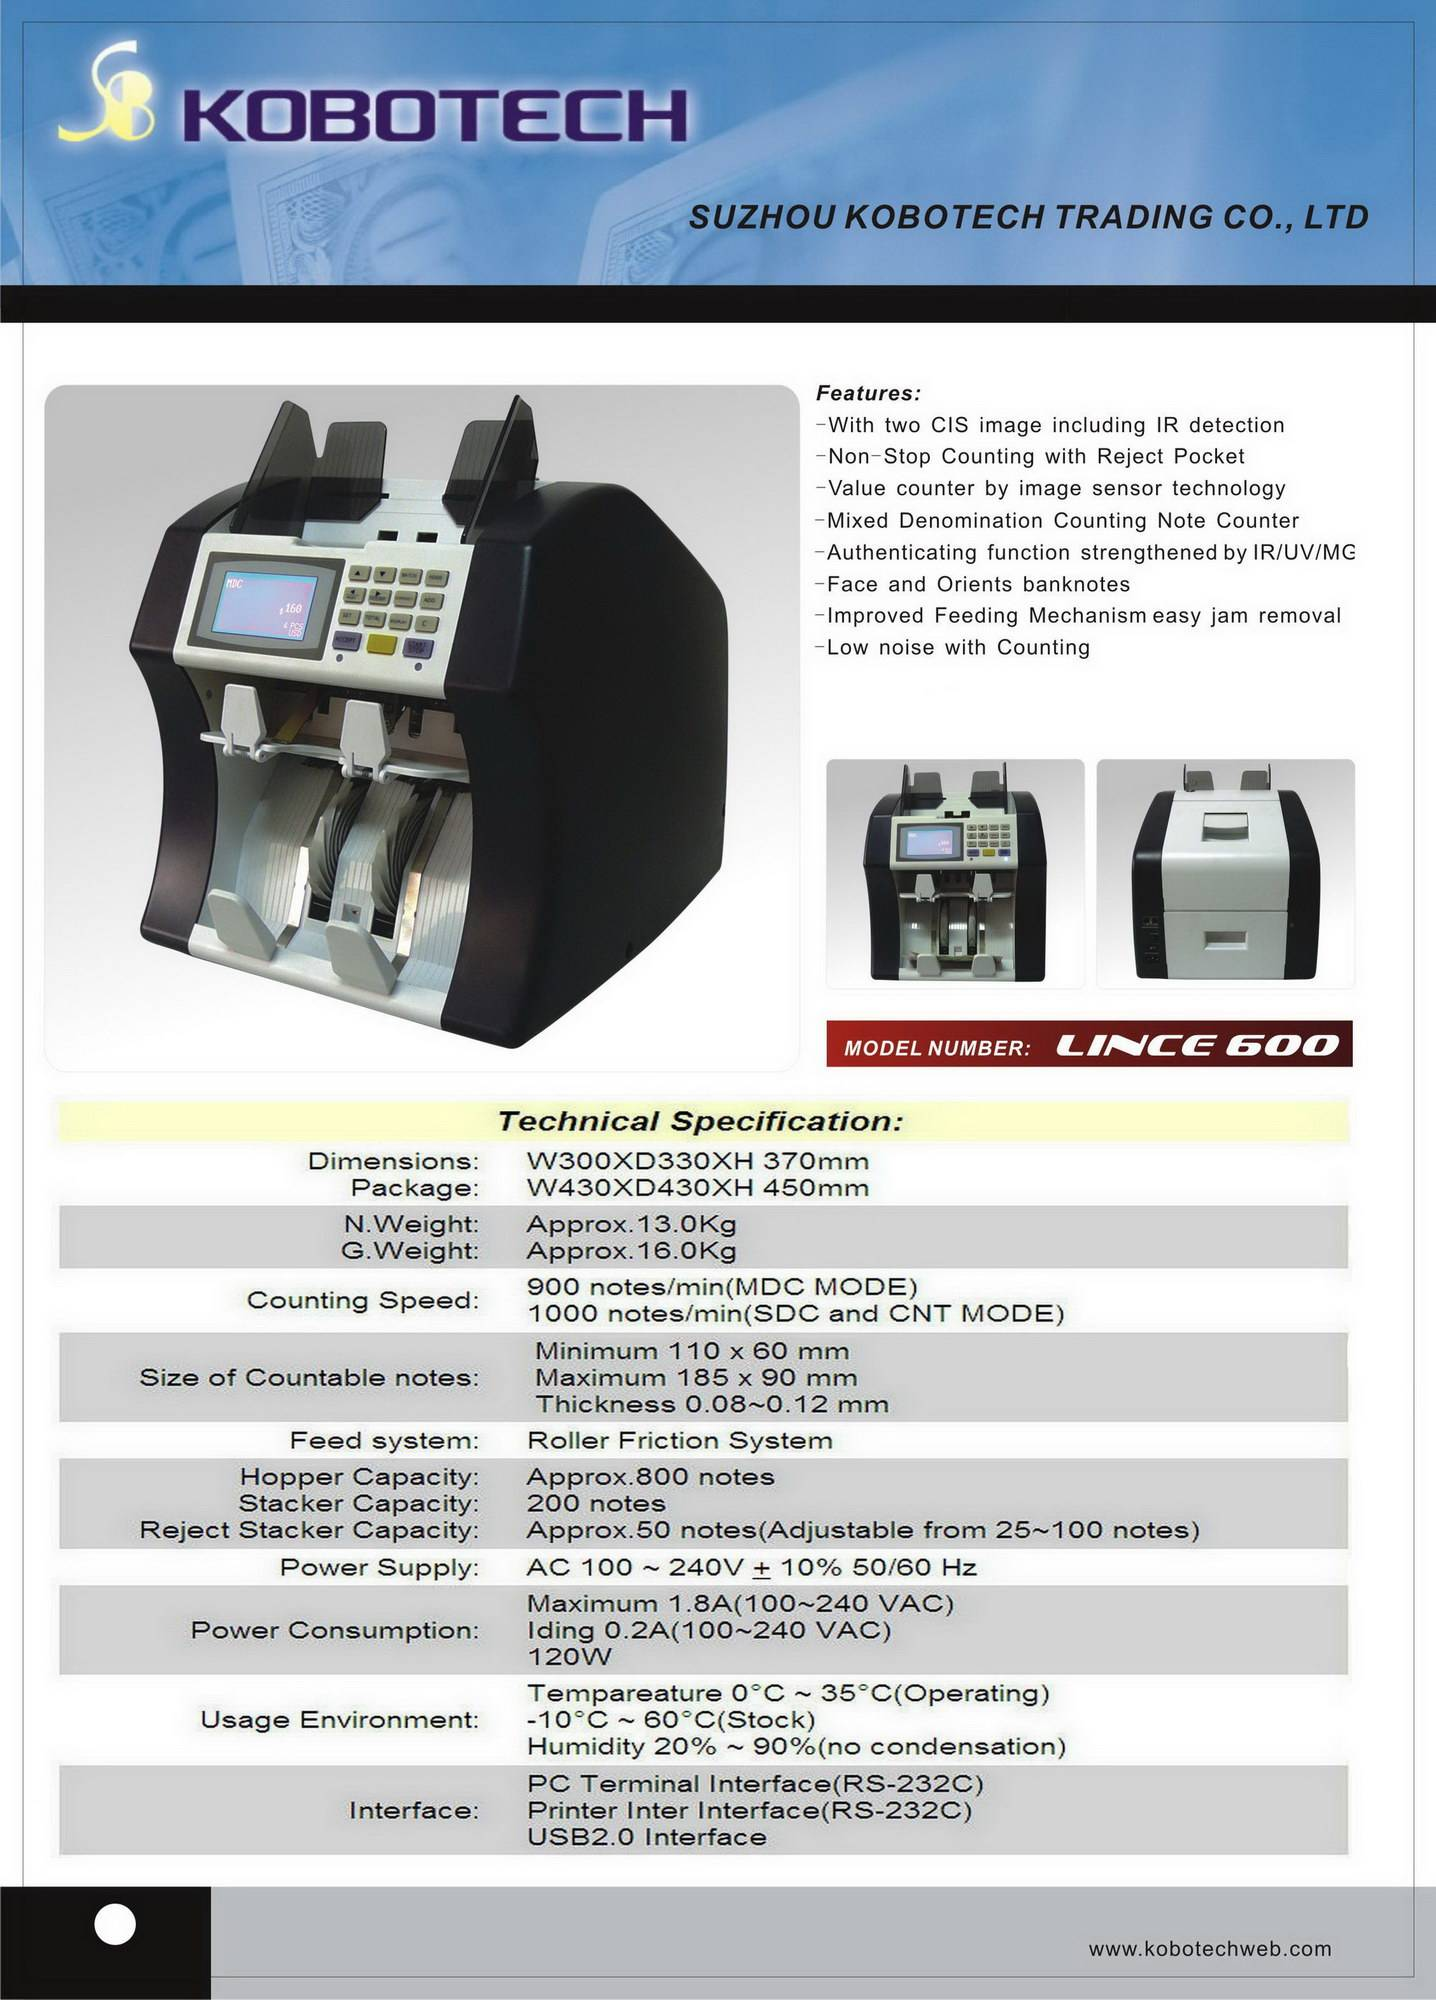 KOBOTECH LINCE-600 two pockets non-stop mix-value counter (ECB 100%)